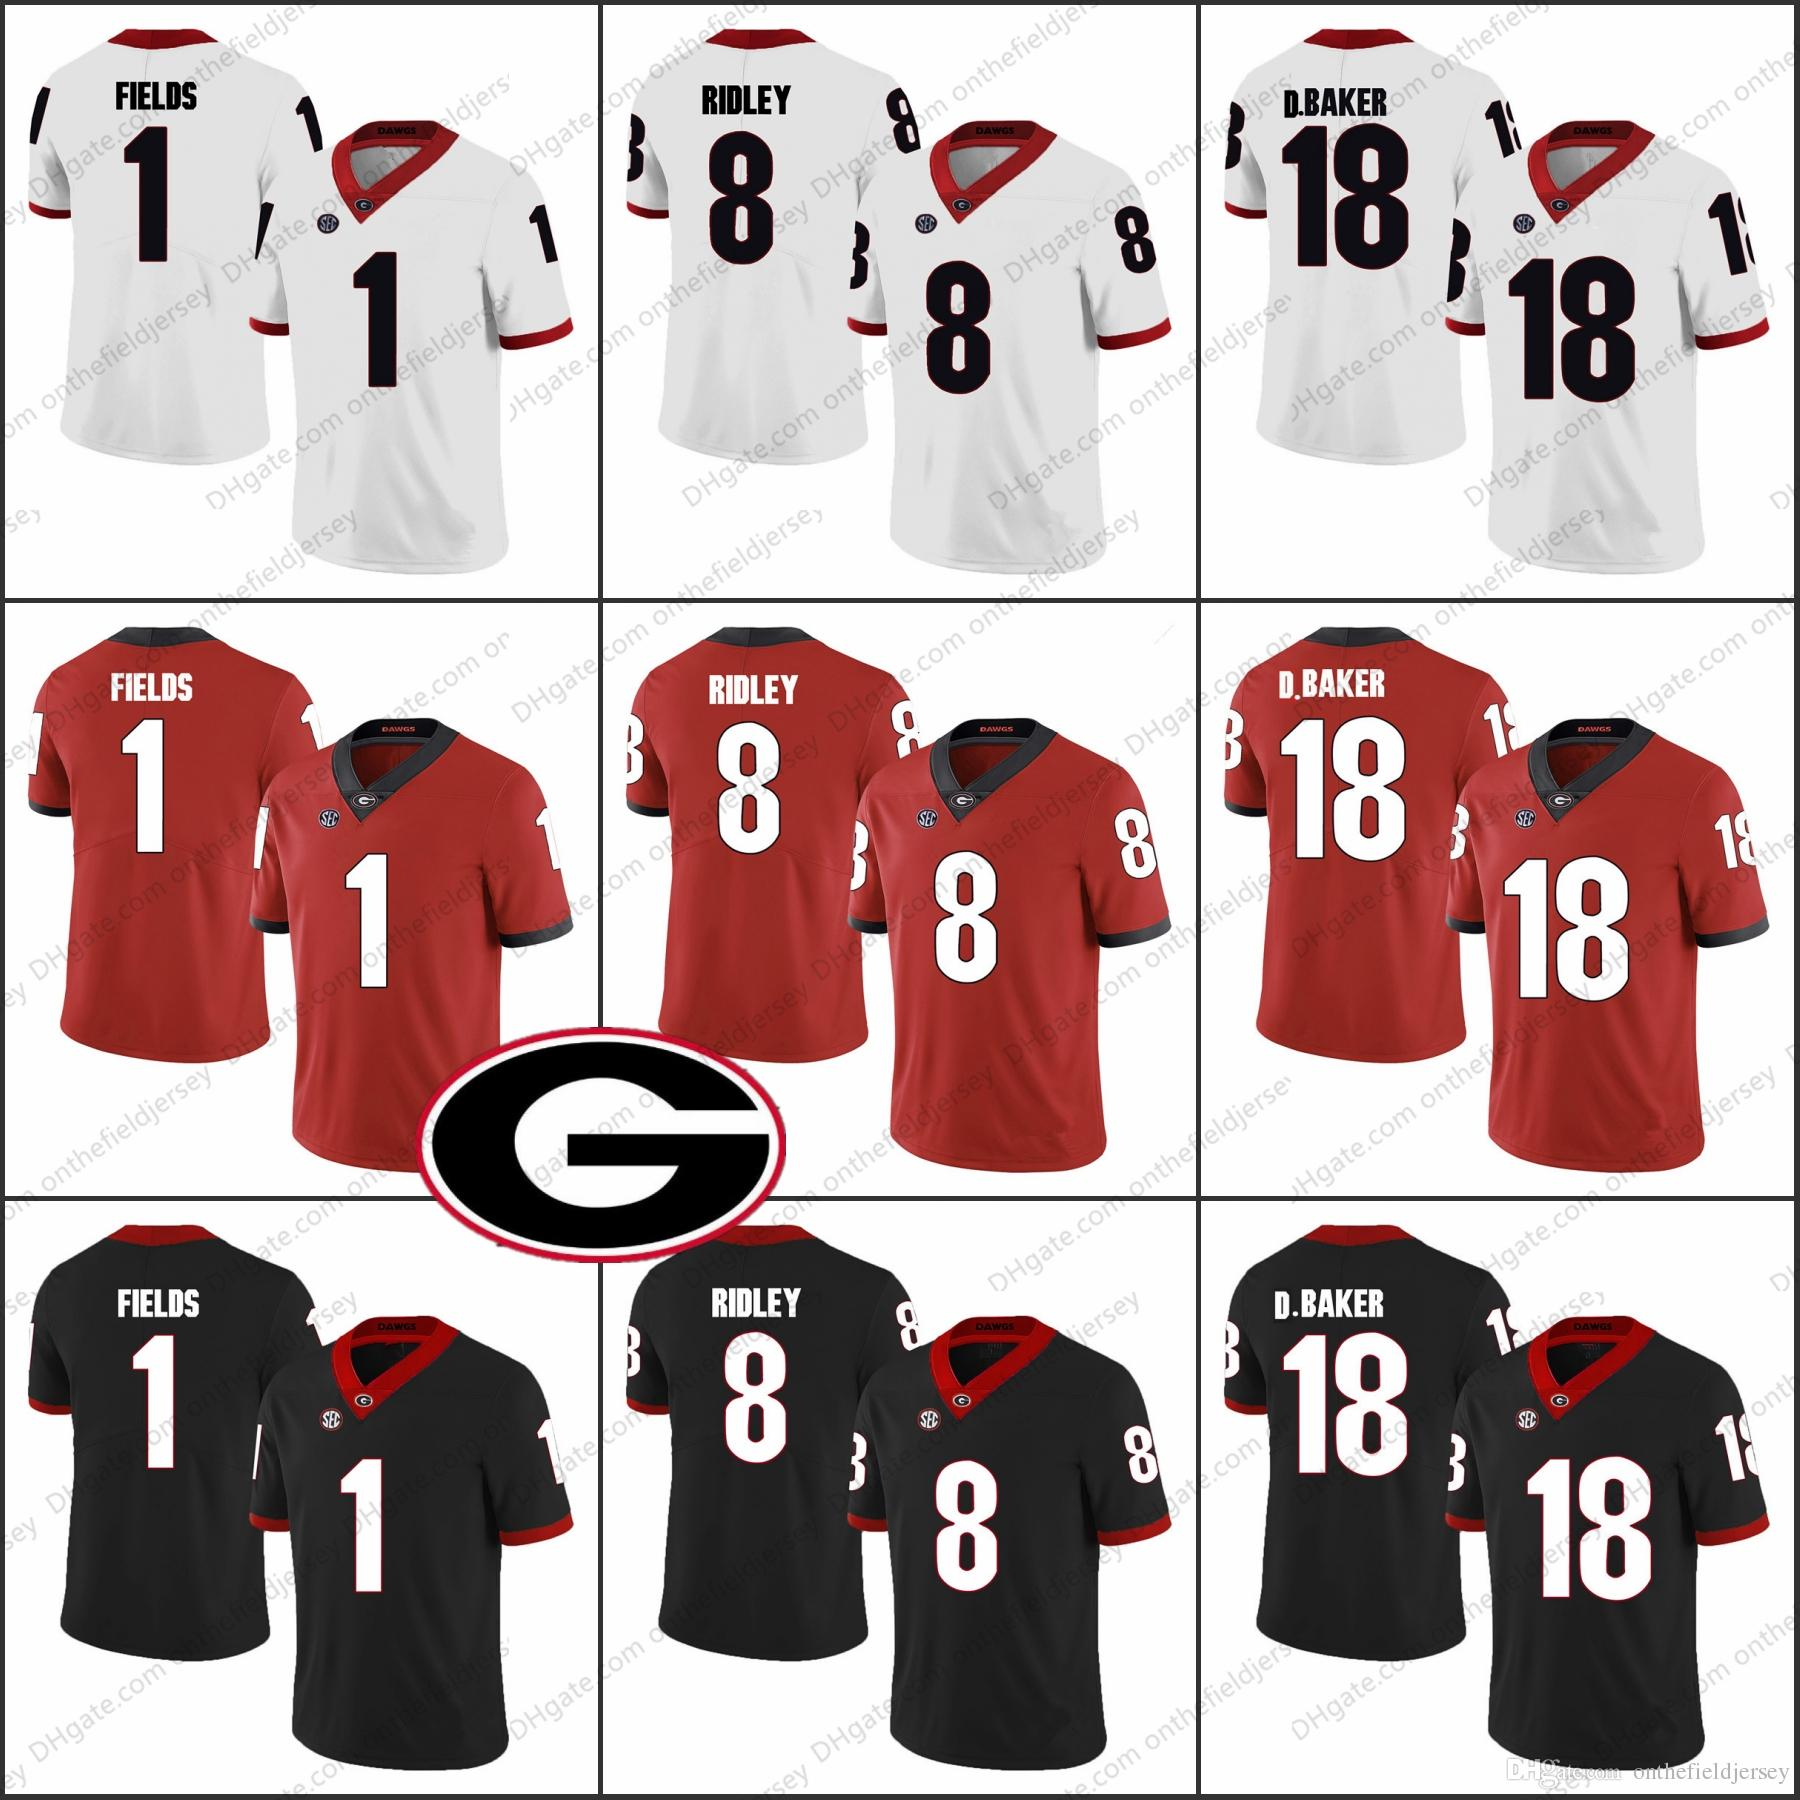 21c2bc2cad4 ... red limited stitched ncaa jersey a97a5 3e039; release date georgia  bulldogs 1 justin fields 1 sony michel 18 d.baker 3 roquan